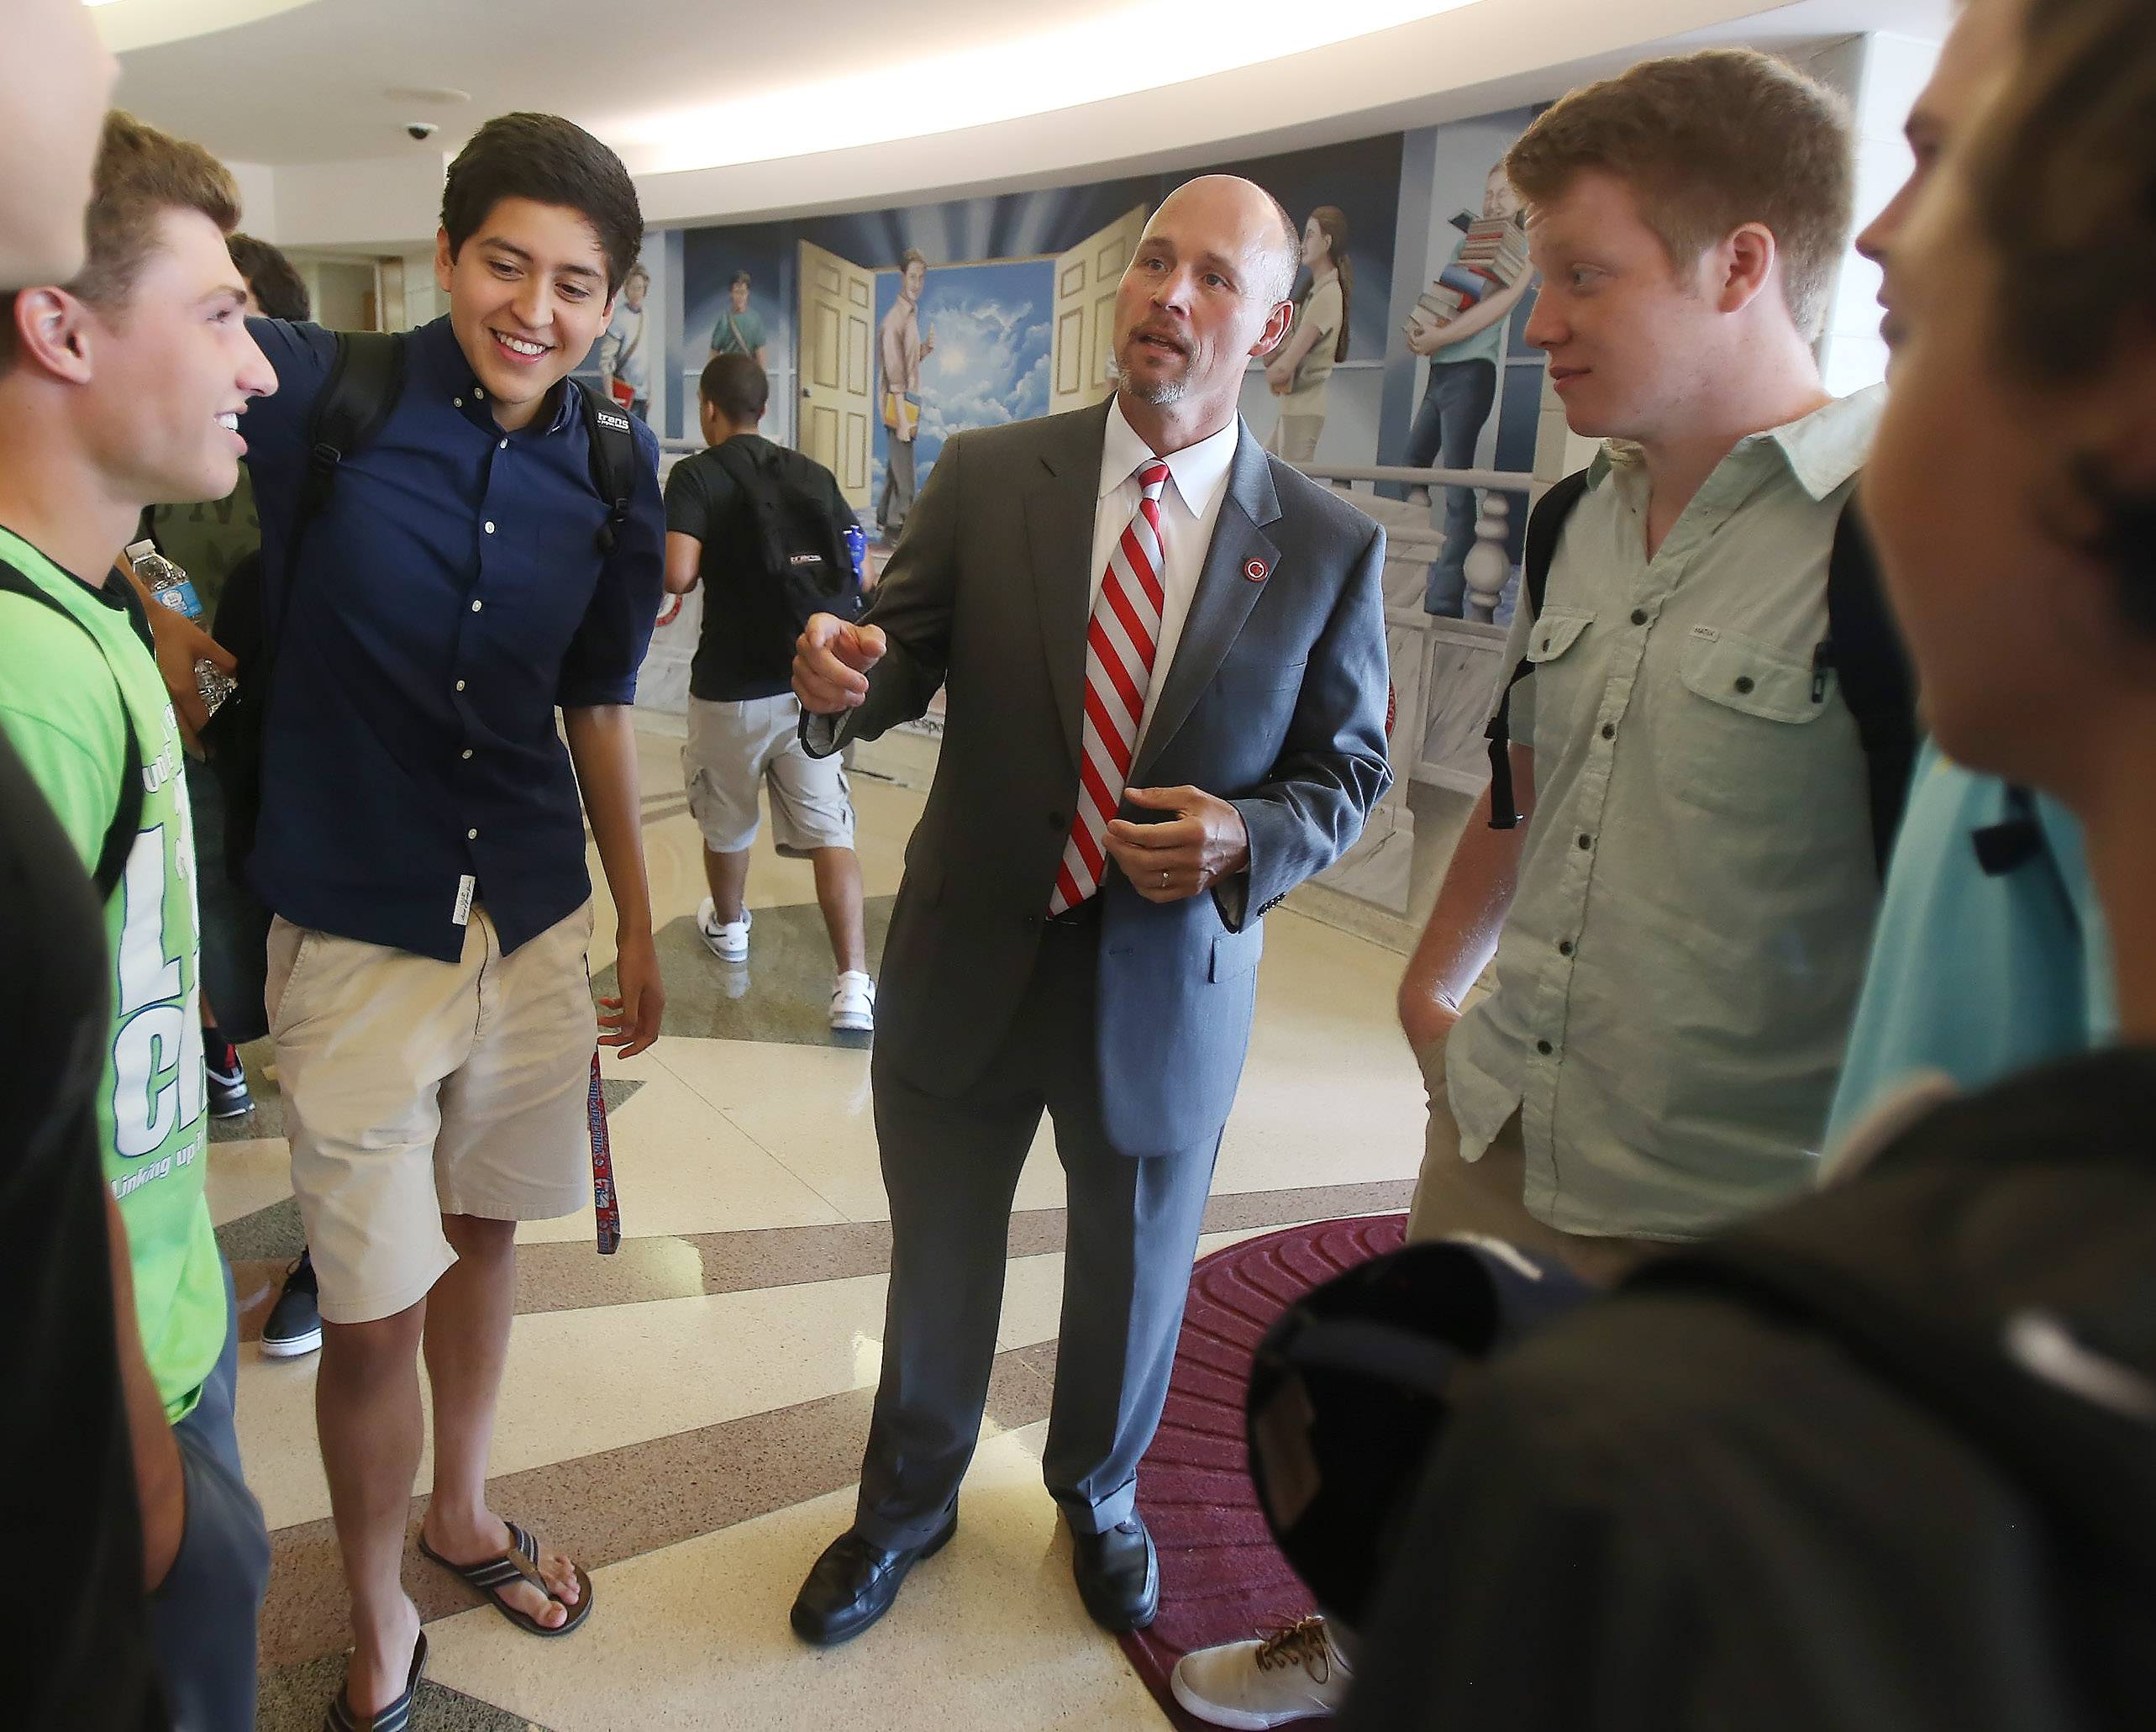 Mundelein High School District 120's new superintendent, Kevin Myers, talks to a group of students on the first day of school. Mundelein High School is giving each student a Chromebook laptop to work with this year as part of a new program.